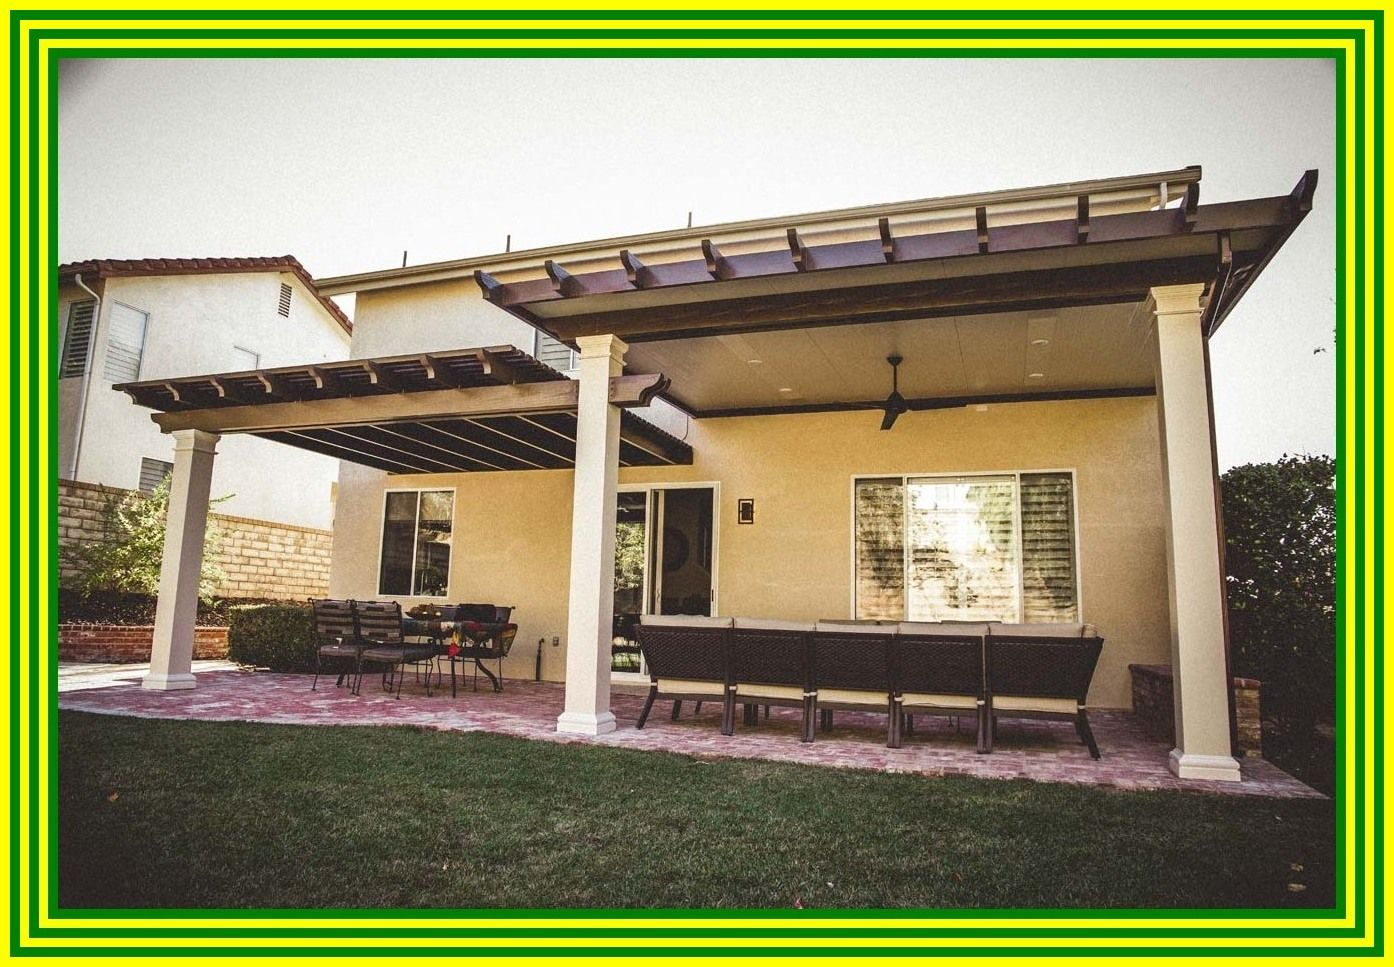 56 reference of alumawood patio cover near me in 2020